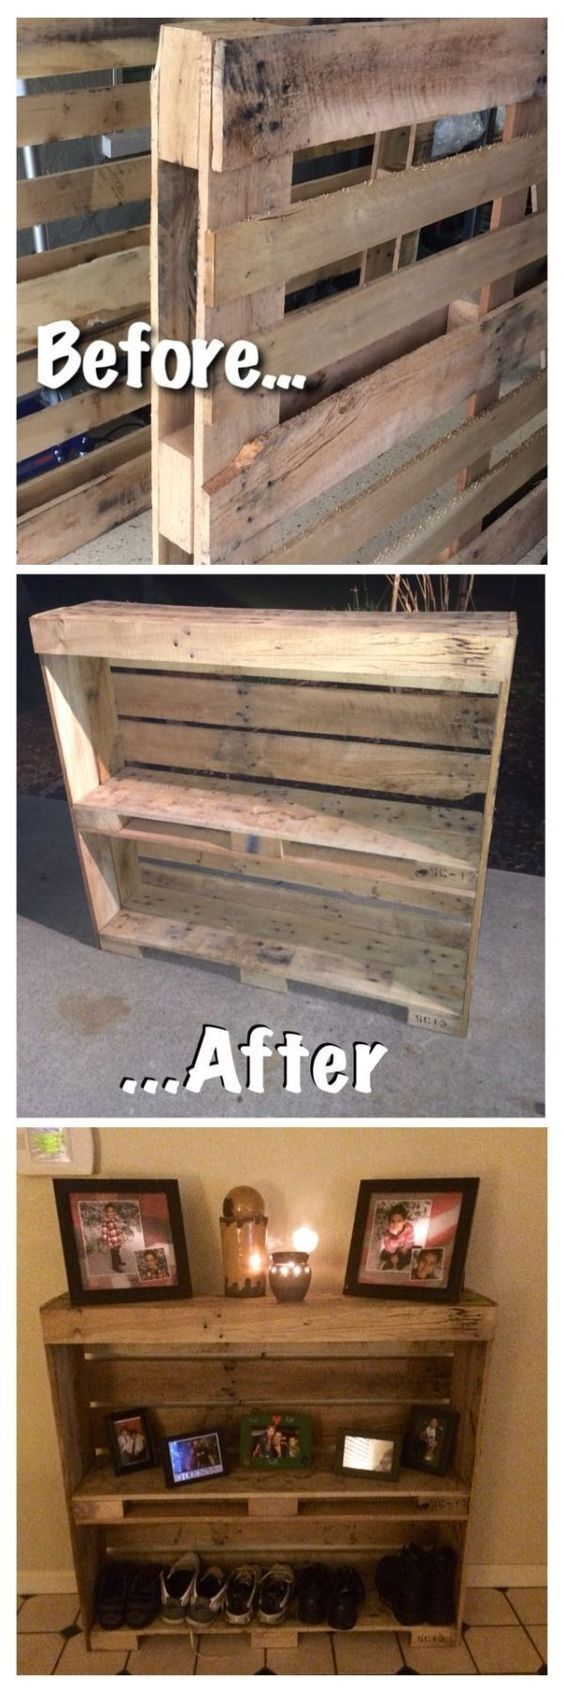 Before and after home decor idea made